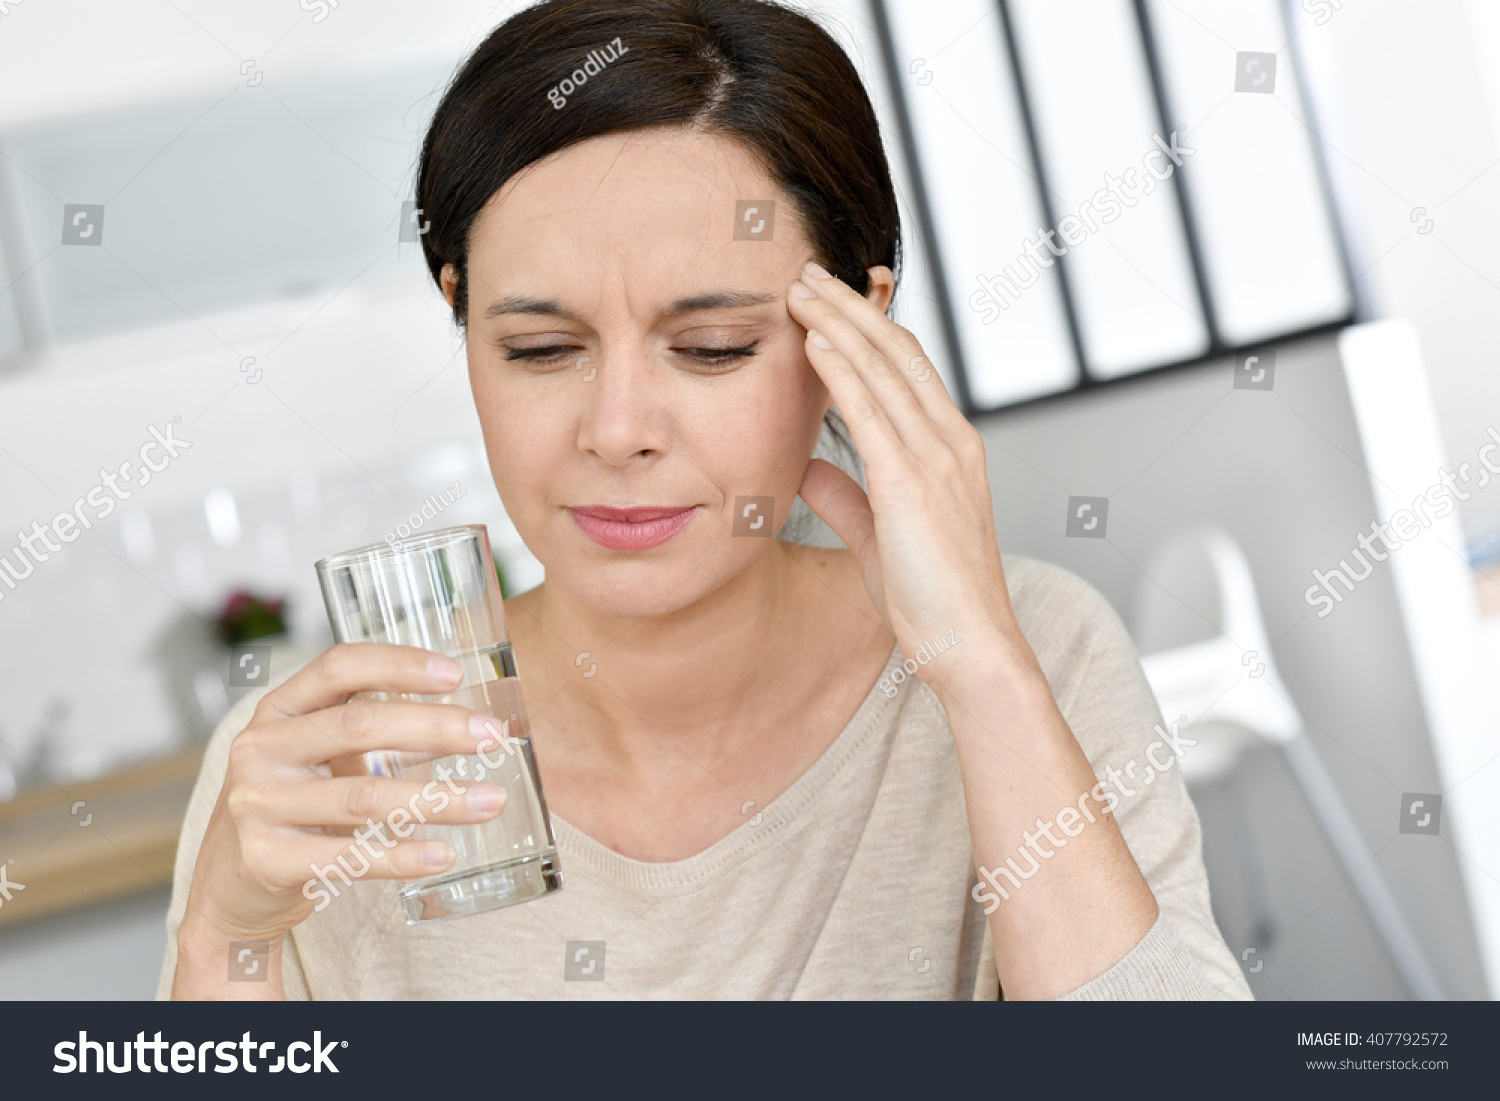 Mature woman having migraine drinking water